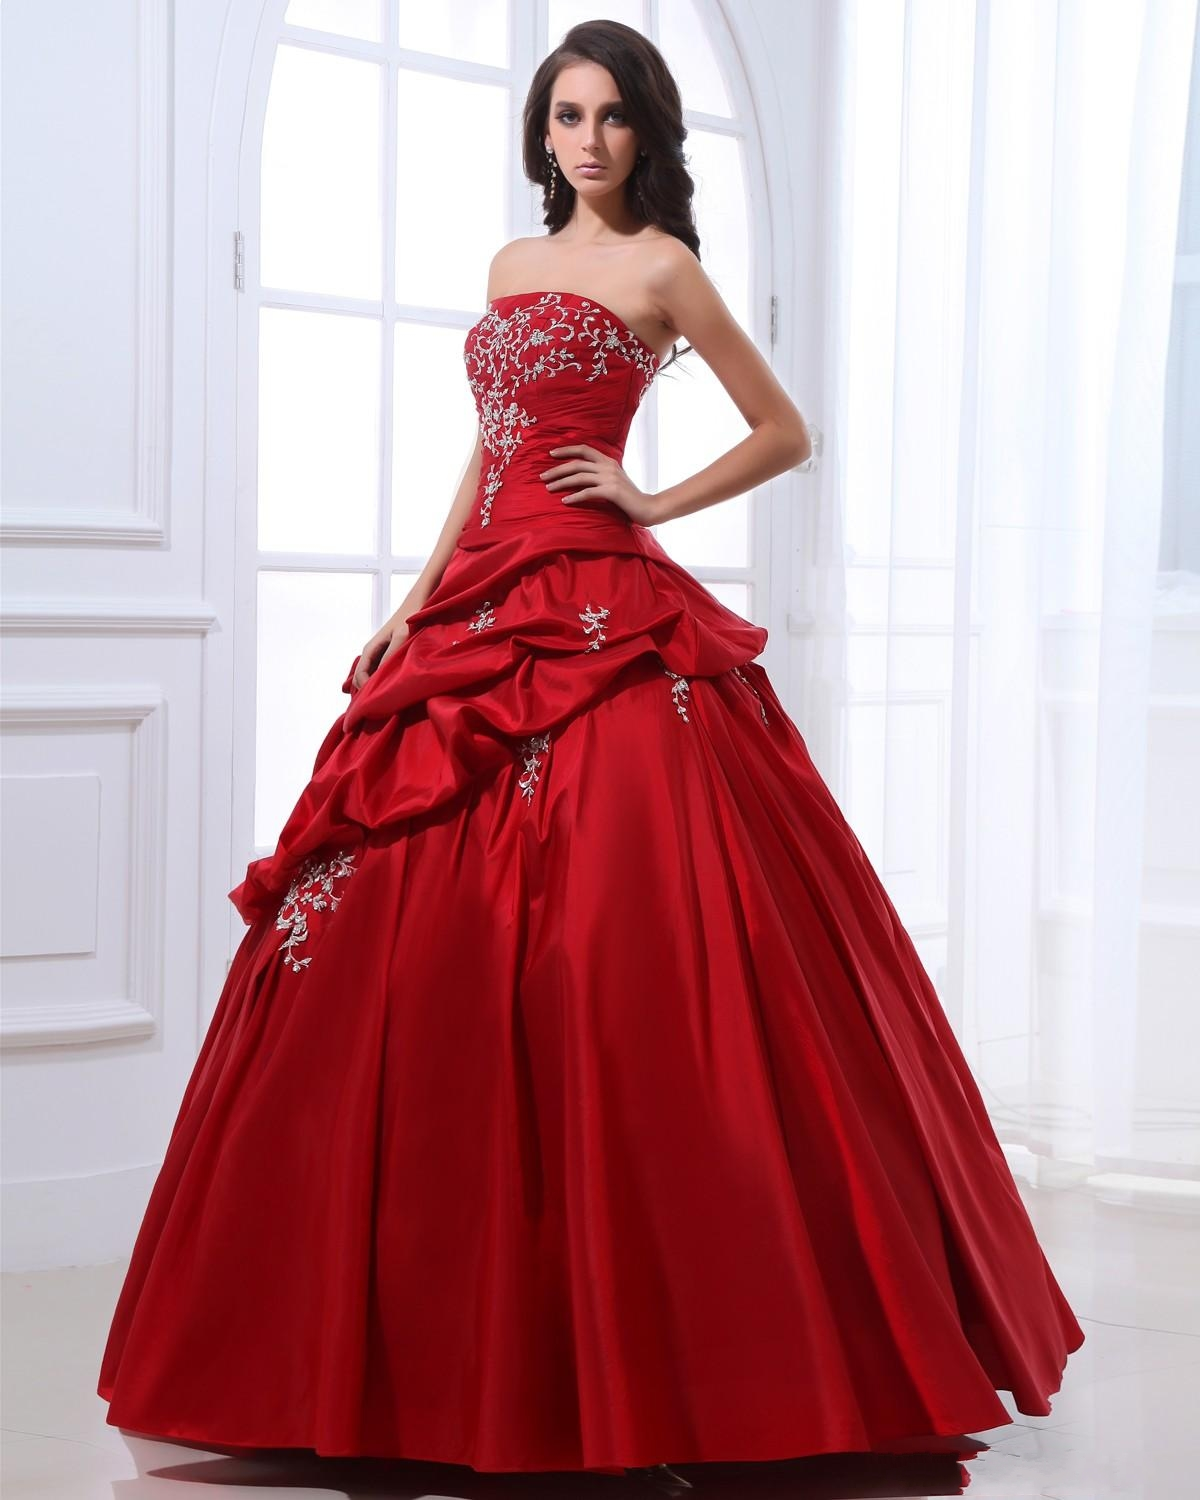 Beautiful Collection Of Valentines Day Dresses For 2015